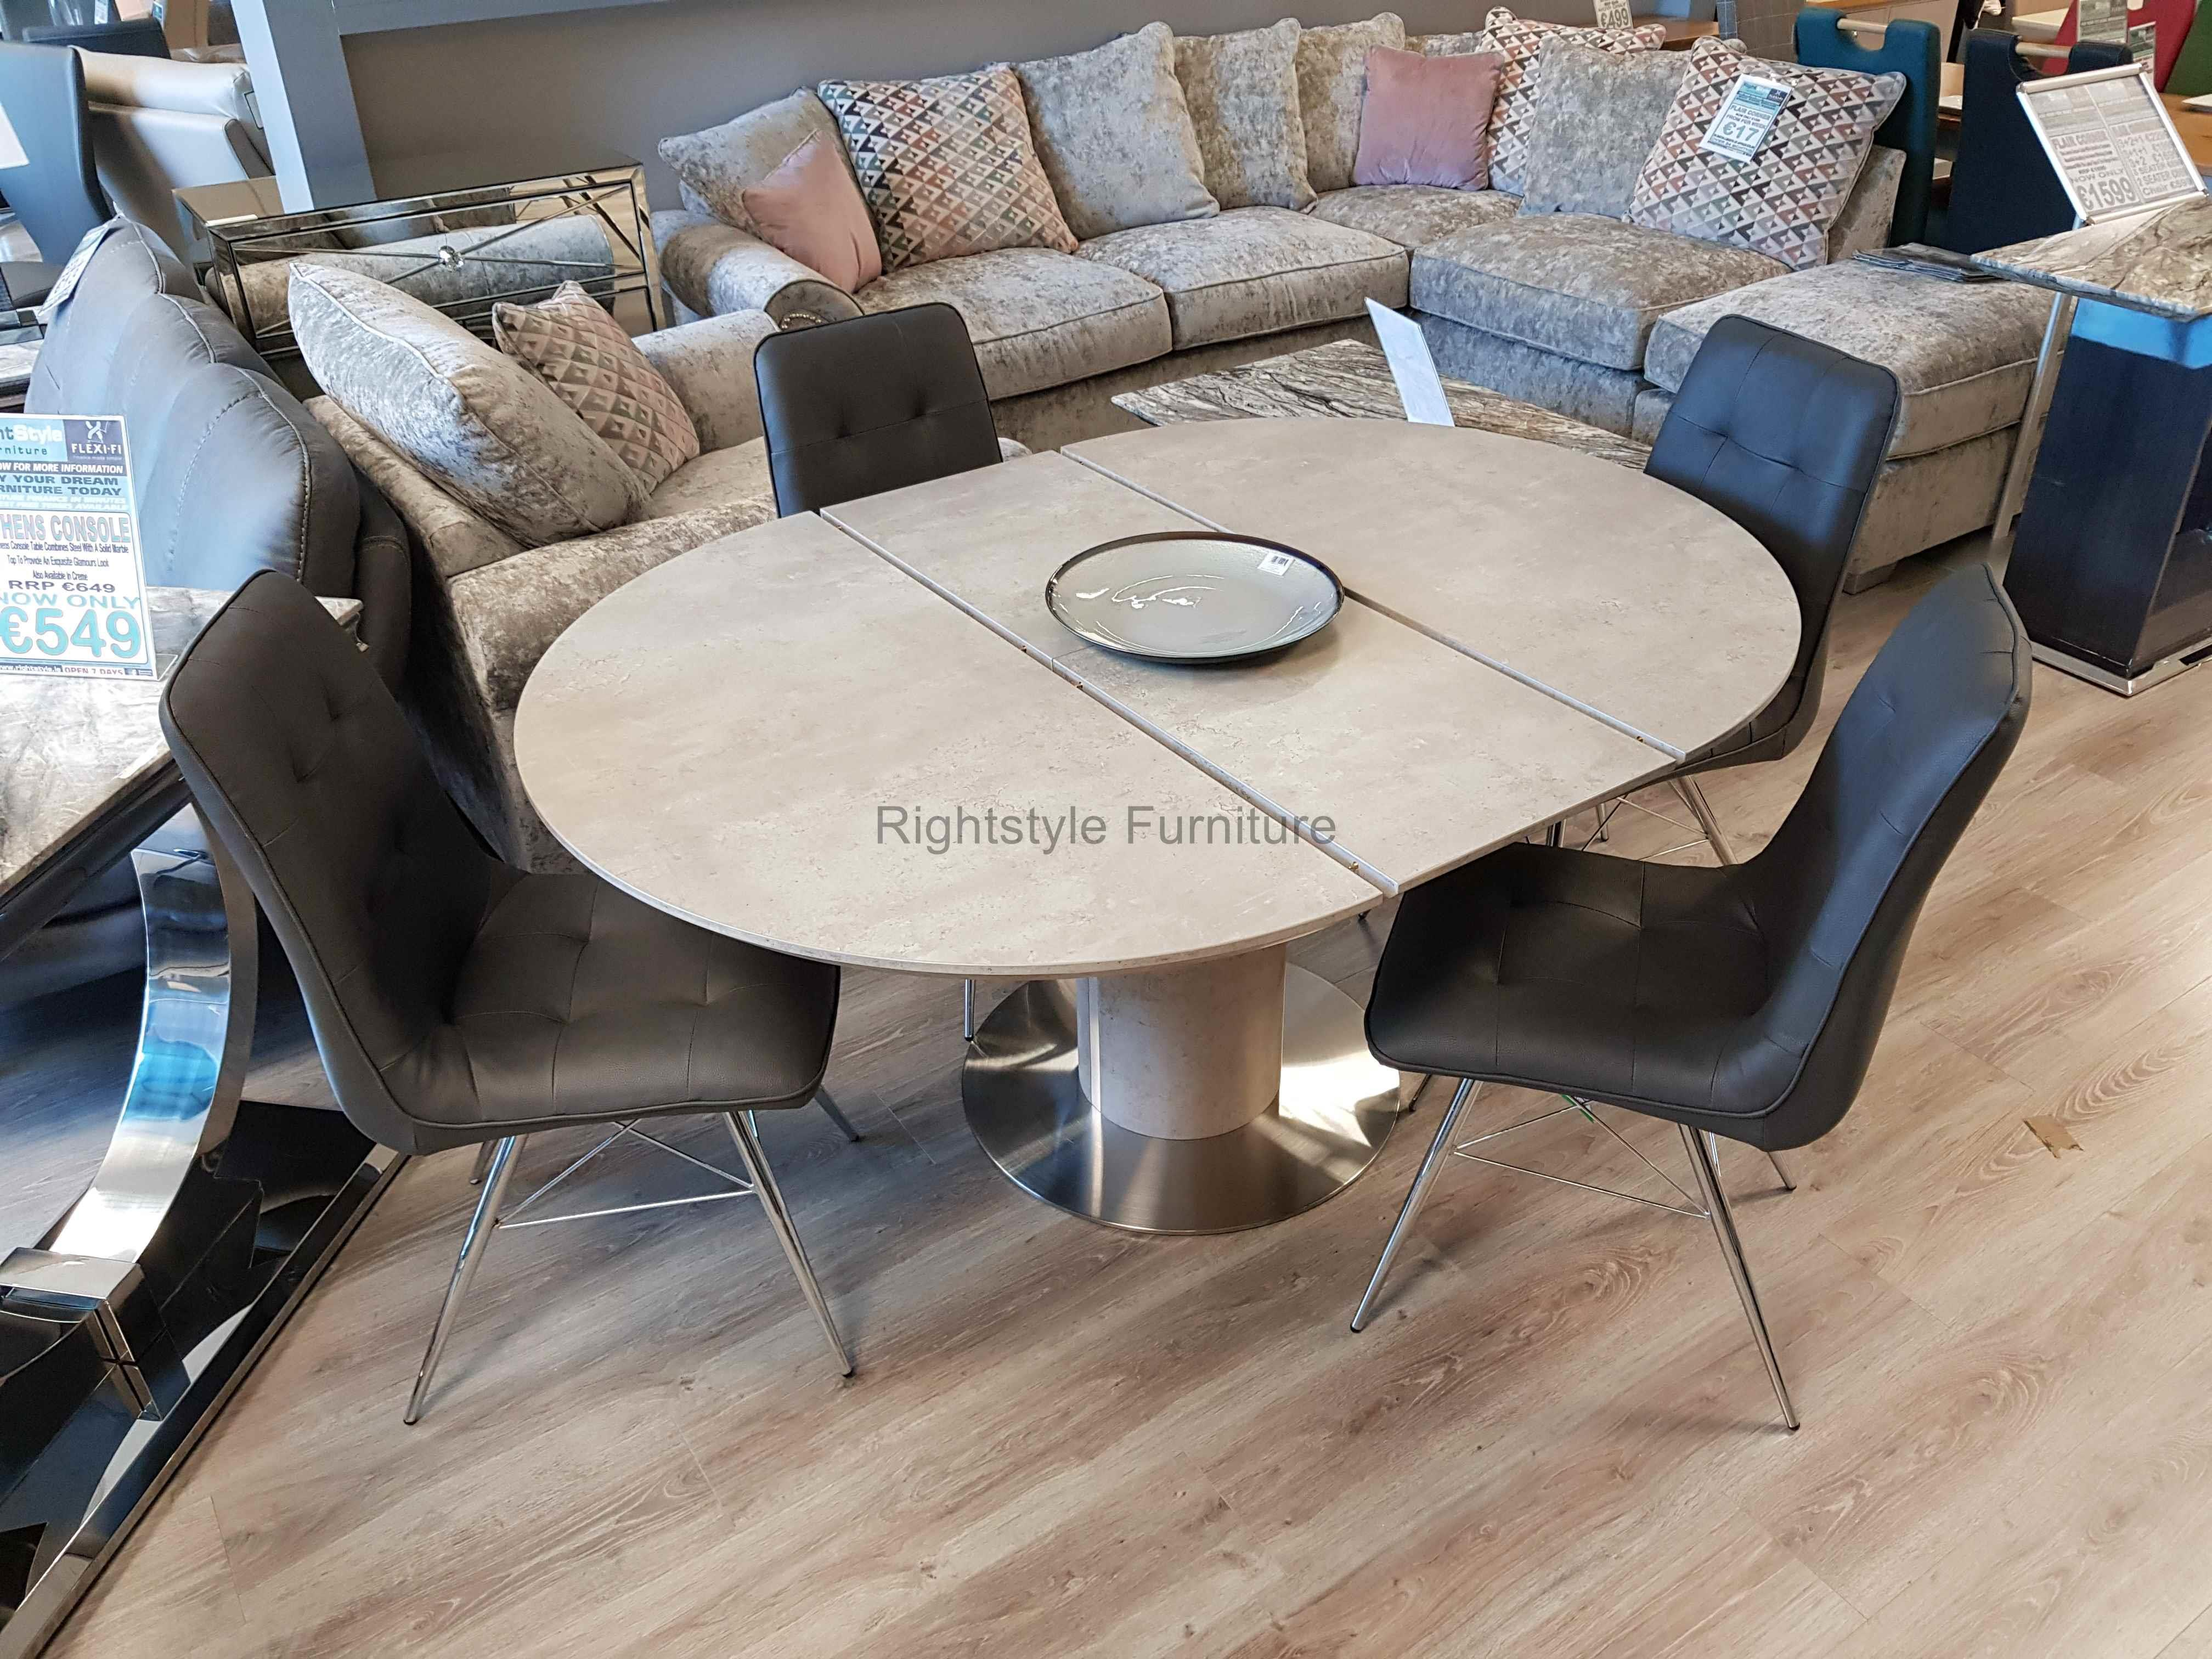 Picture of: Round Dining Table Set Concrete Effect Dublin Ireland Furniture Store Rightstyle